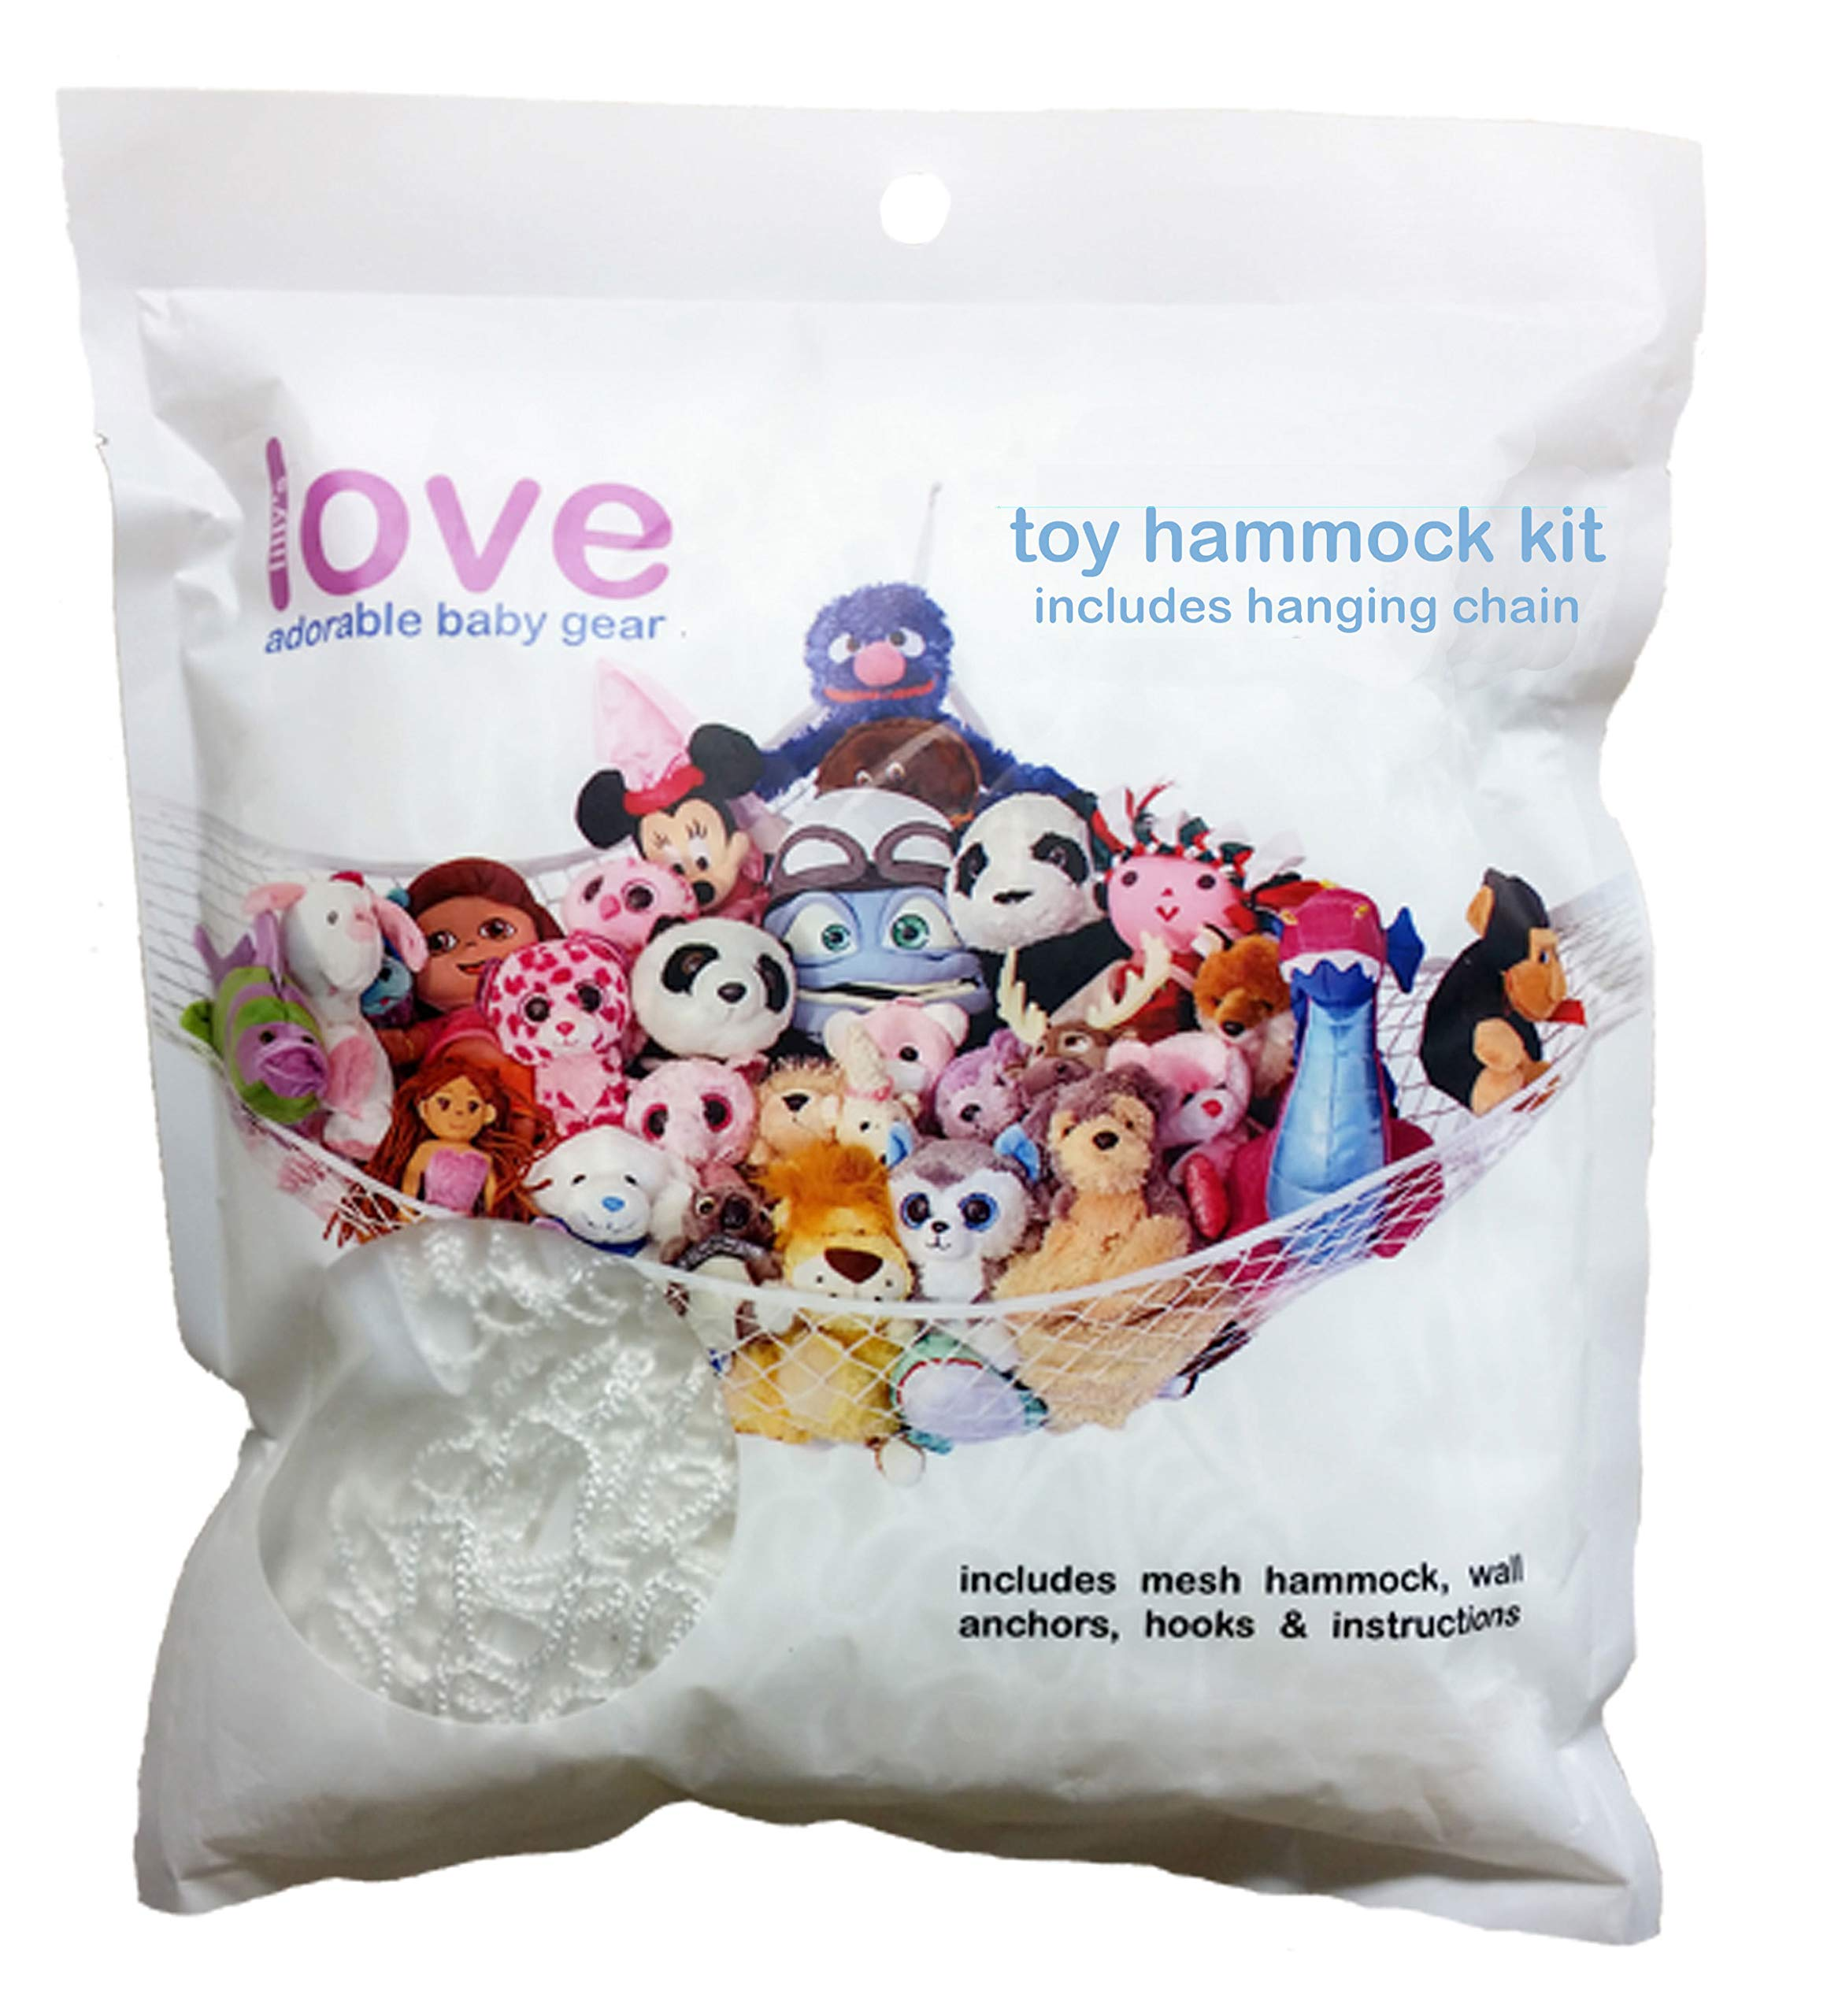 Lilly's Love Stuffed Animals Storage Chain and Hammock Kit Includes Chain & Hammock, Plastic Chain 60 inch + 20 Strong Clips & Hardware by Lilly's Love